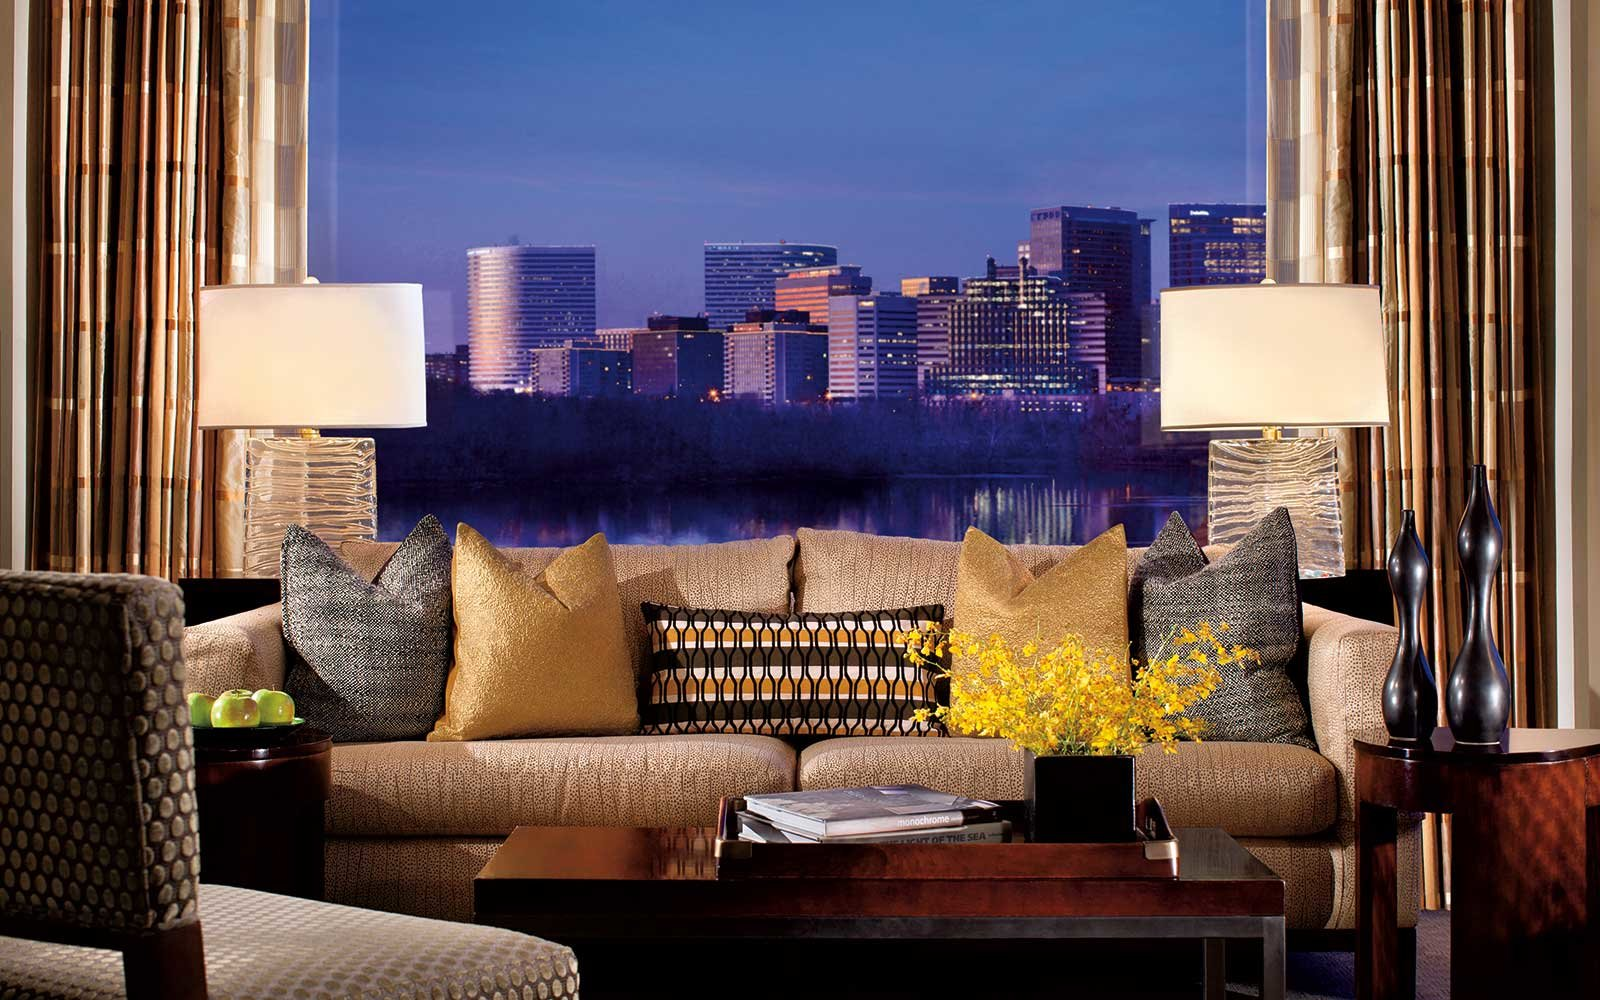 6. Ritz-Carlton, Georgetown